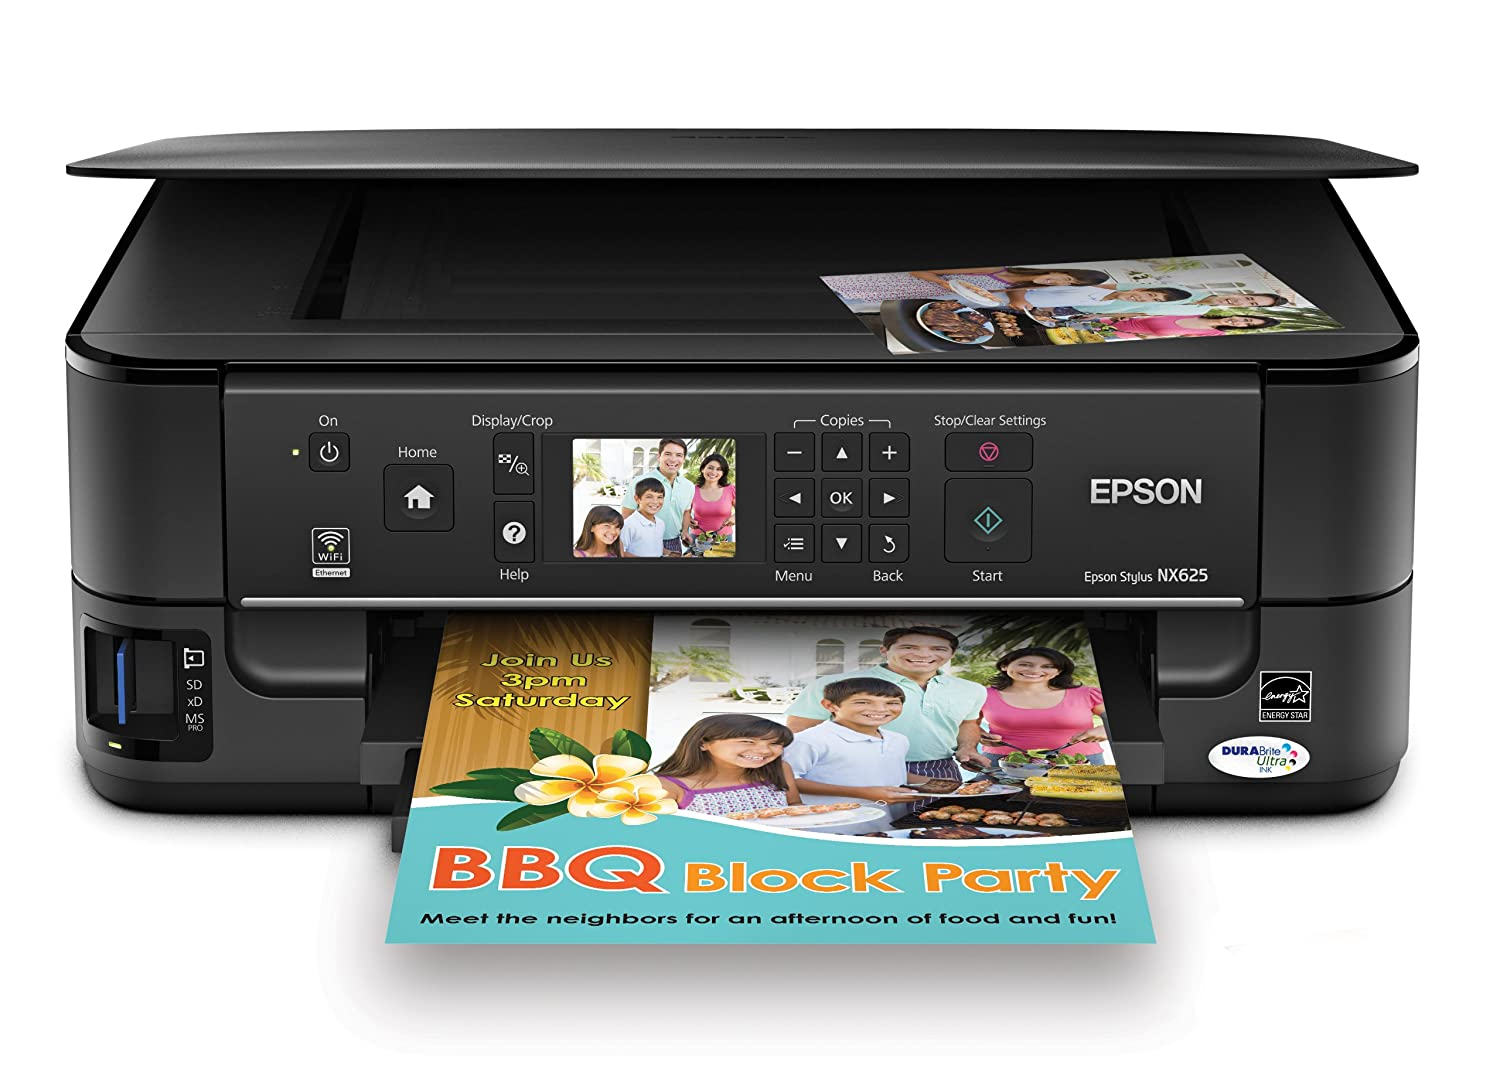 EPSON STYLUS NX625 PRINTER DRIVER FOR MAC DOWNLOAD